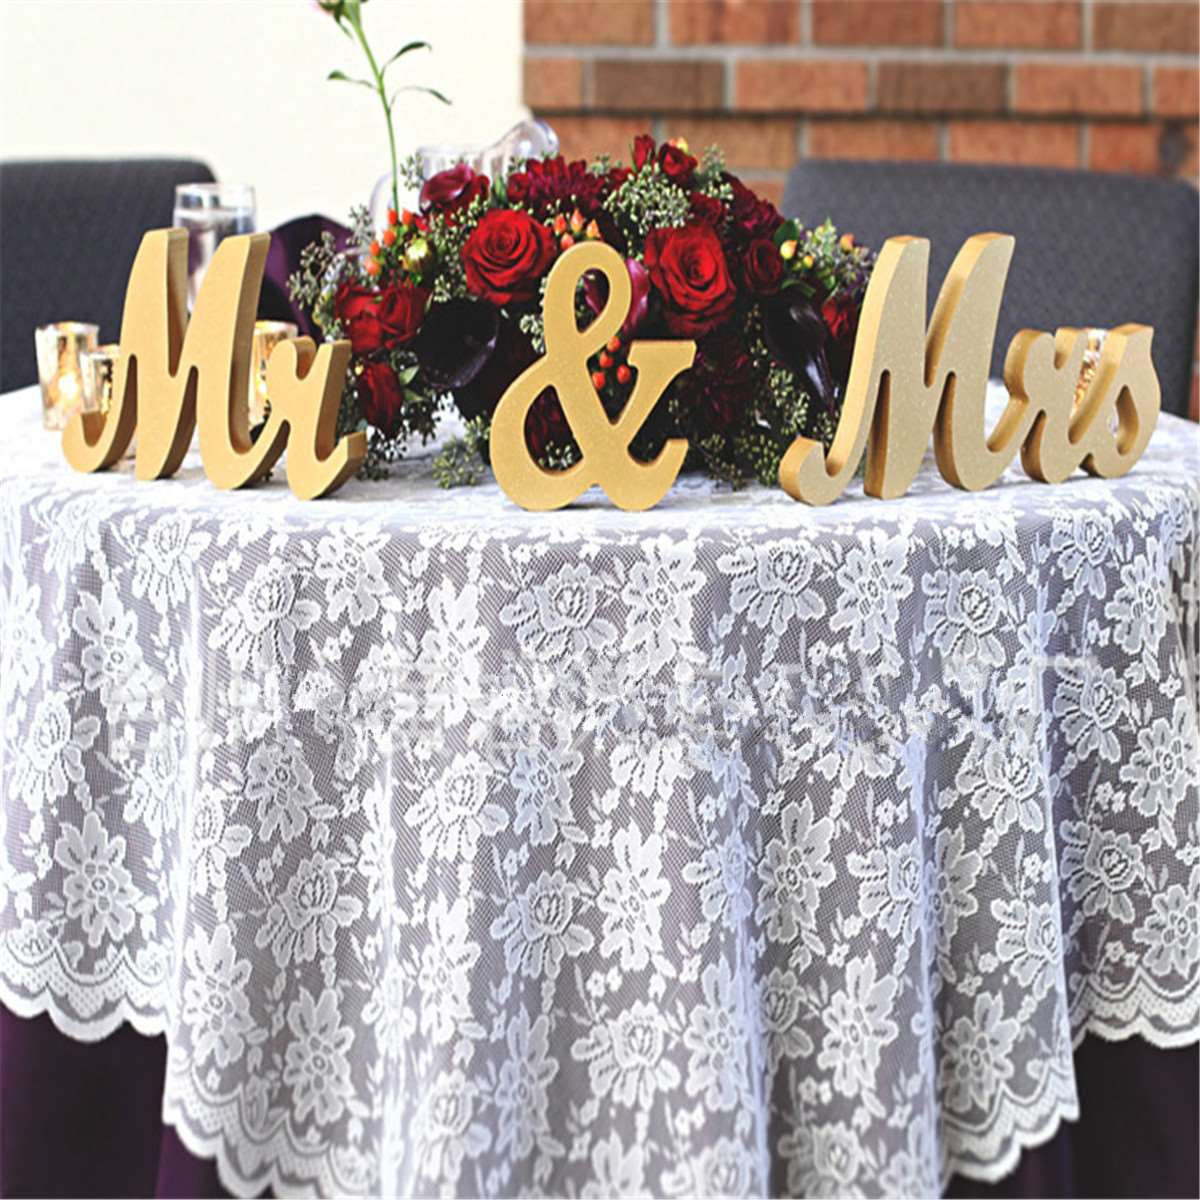 1 set mr mrs wooden letters for wedding decoration supplies sign gold wooden mr mrs standing letters wedding table centrepiece reception sign party wedding decoration party junglespirit Images